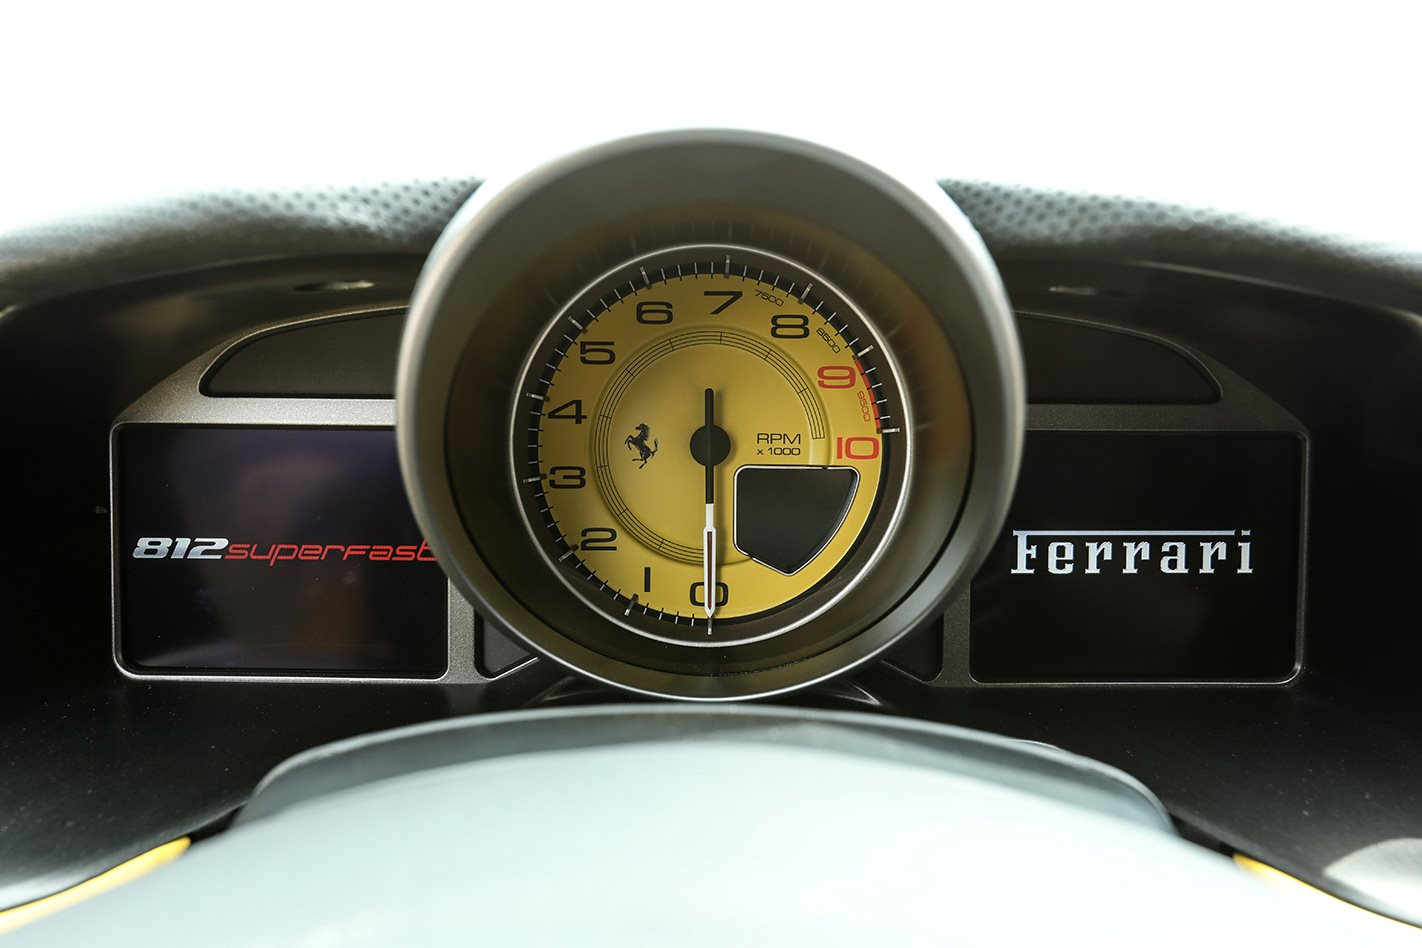 2018 Ferrari 812 Superfast speedo.jpg